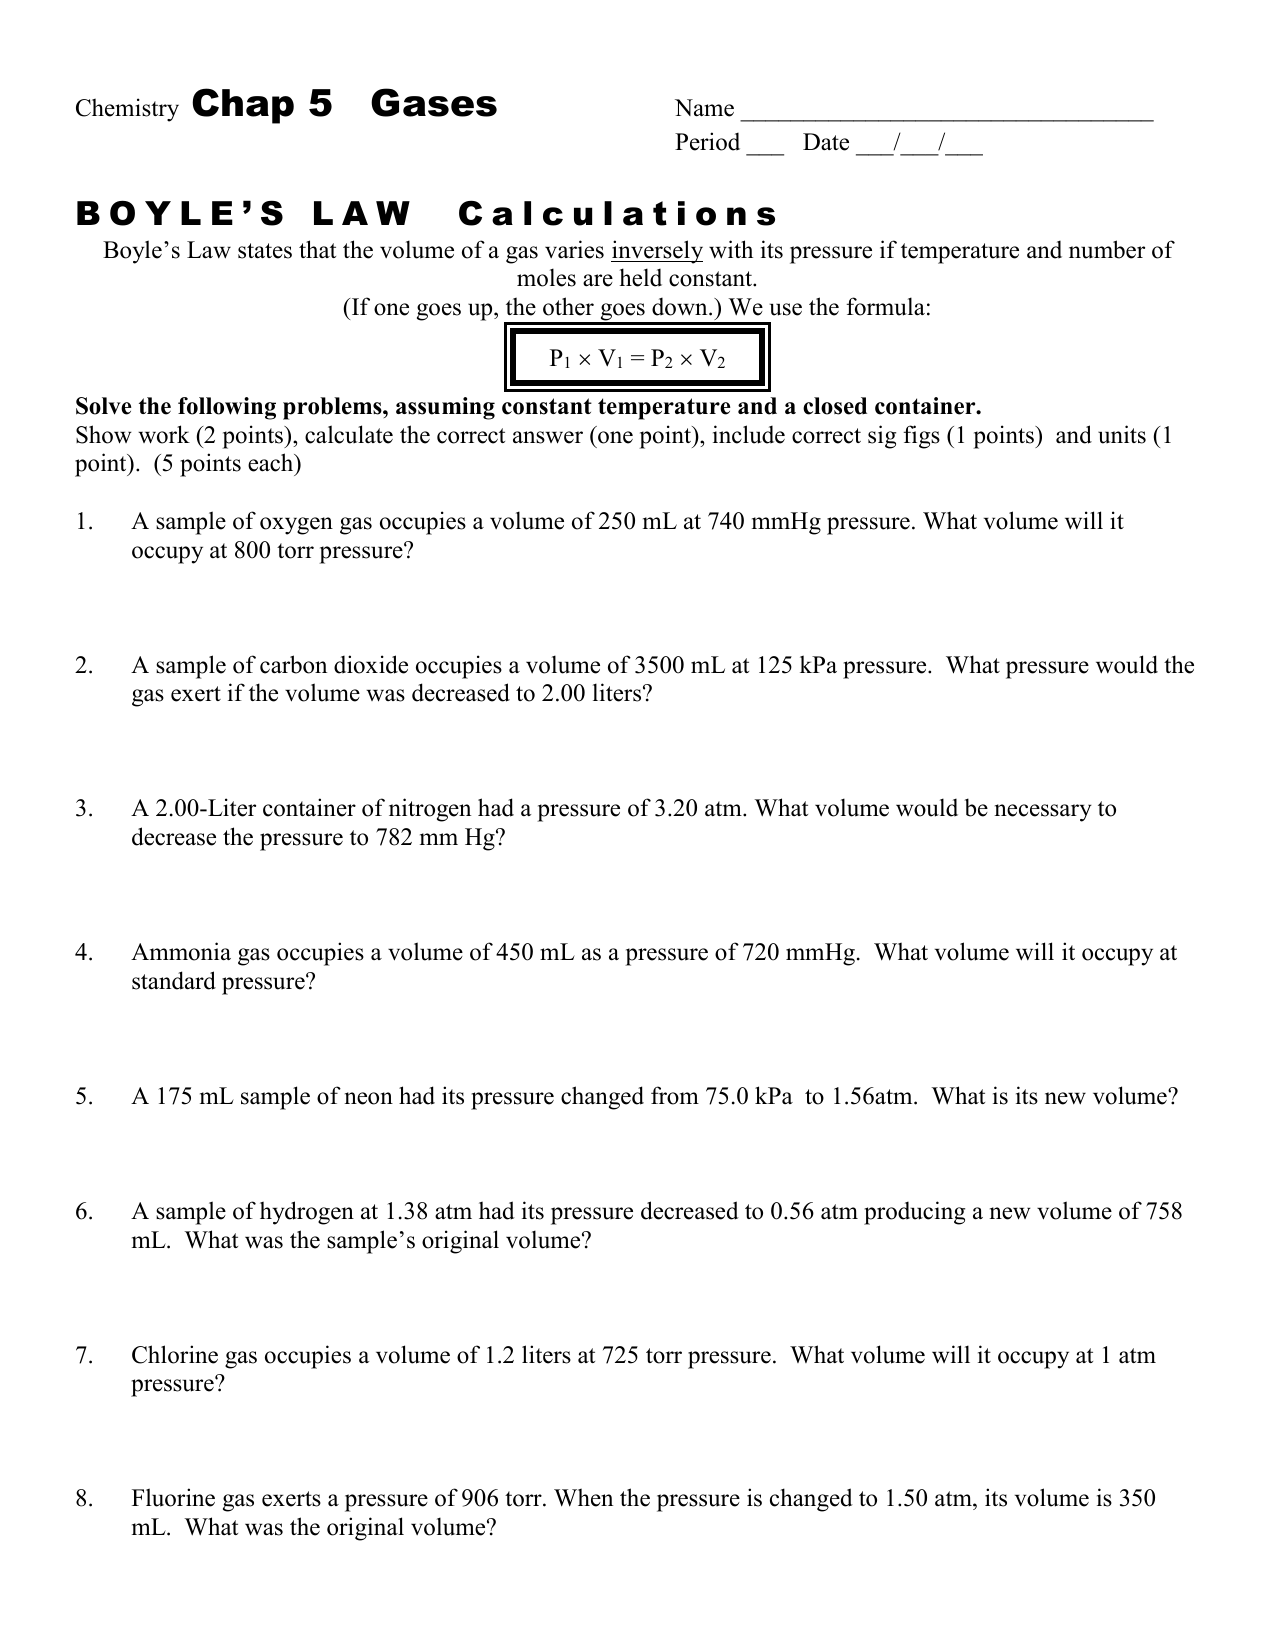 Chap 12 Boyle S Law Worksheet Boyle S Law Wksht 12